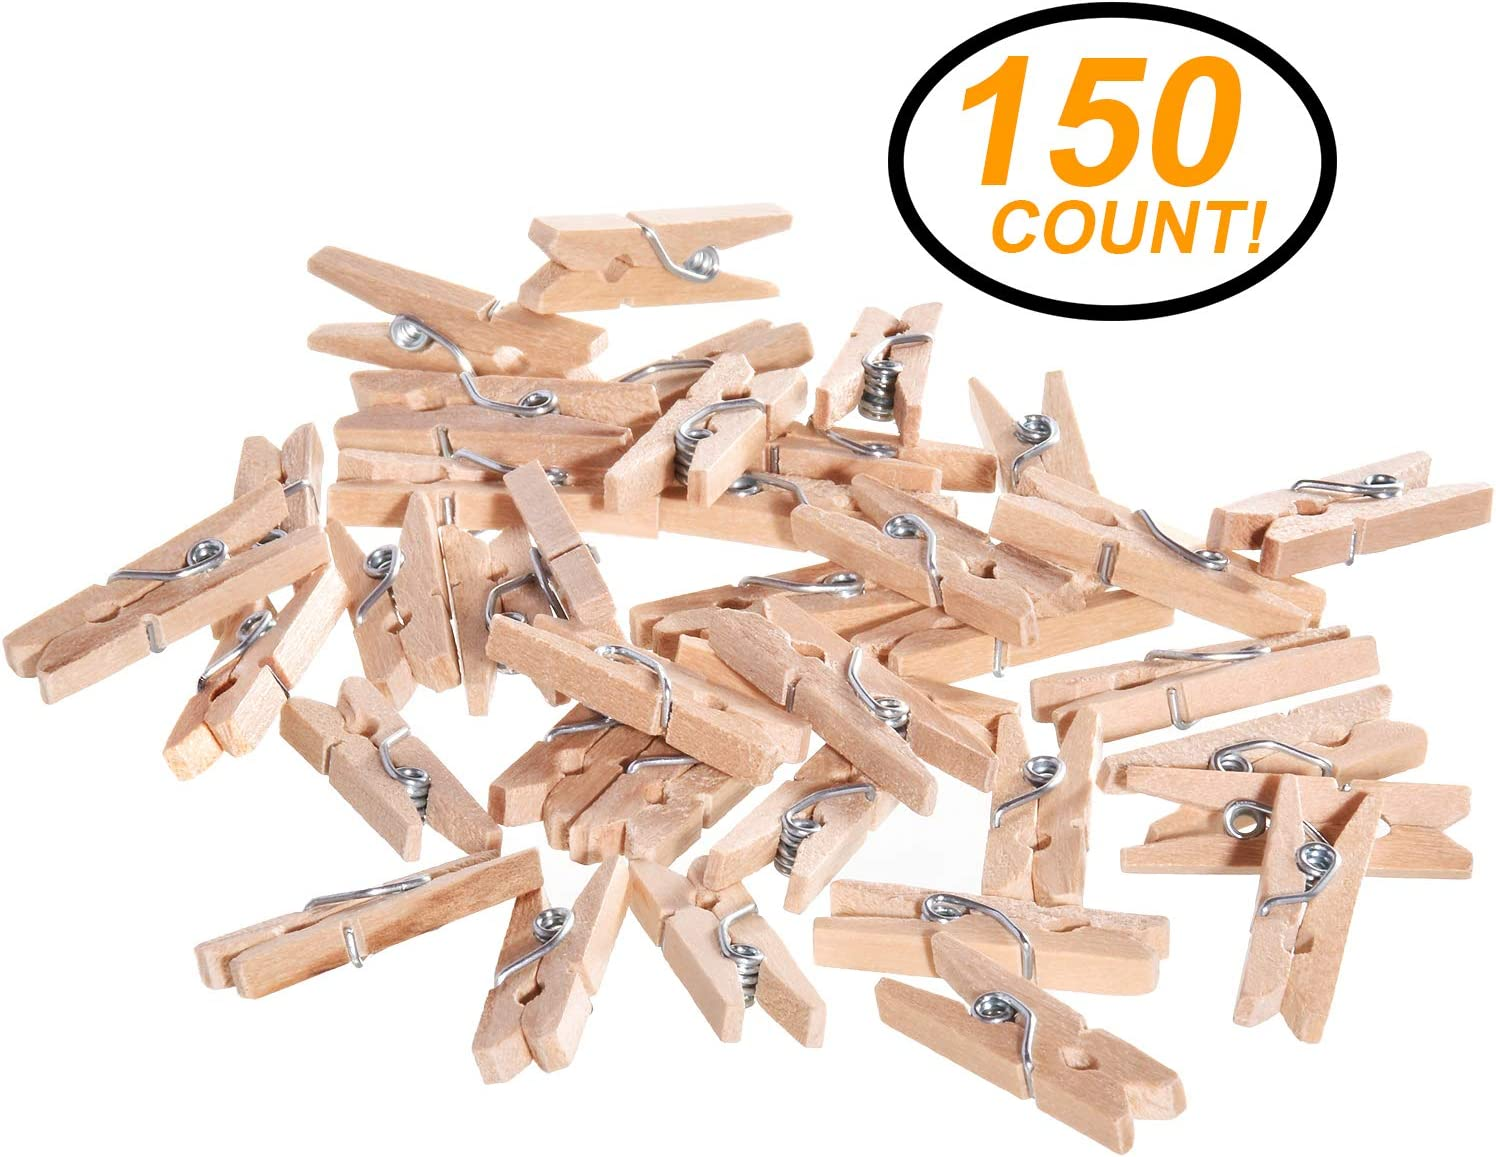 Ram-Pro Mini Natural Wood Clothespins - 150 Pieces Mini Clothespins Wooden Clips Pegs for Crafts and Home Decoration, Wooden Pins for Scrap Booking Mini Wooden clothespins